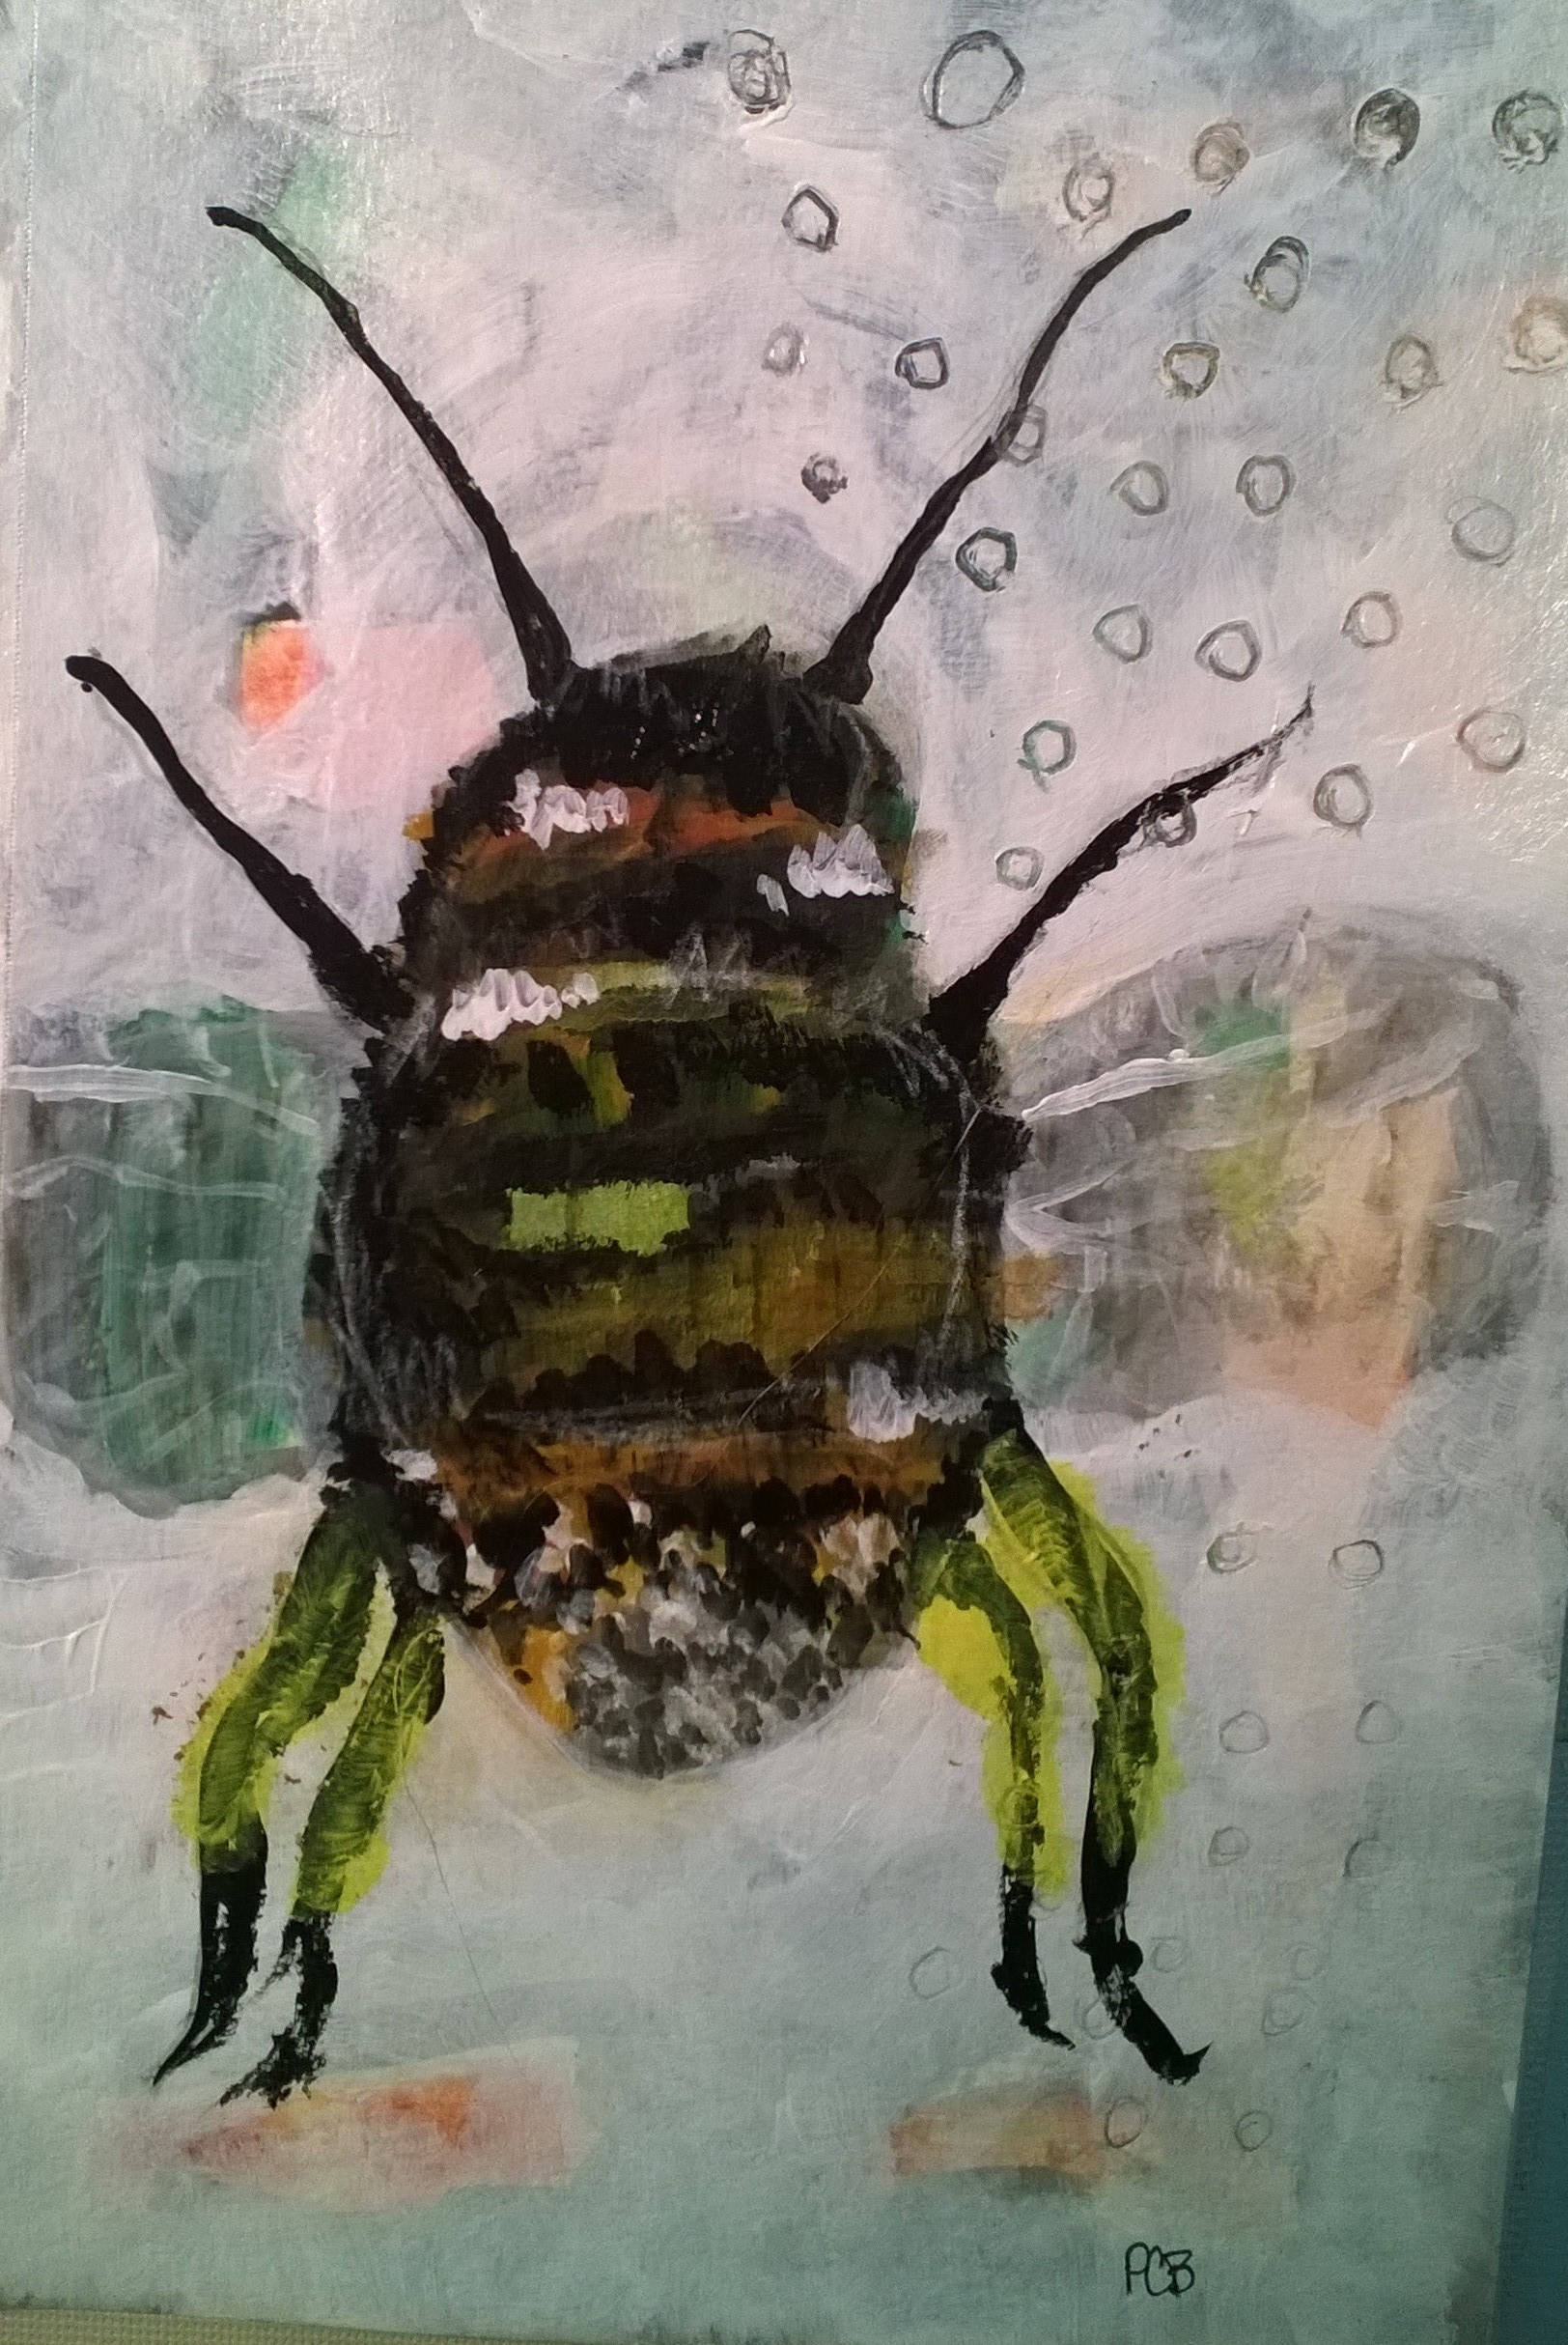 This chunky bumblebee is a play with acrylic paints that I had in a lesson taught by Micki Wilde. This was so much fun! This was an online course I found on Sketchbook Skool called Whisical Sketching. I've always loved bumblebees keeping me company in the garden!